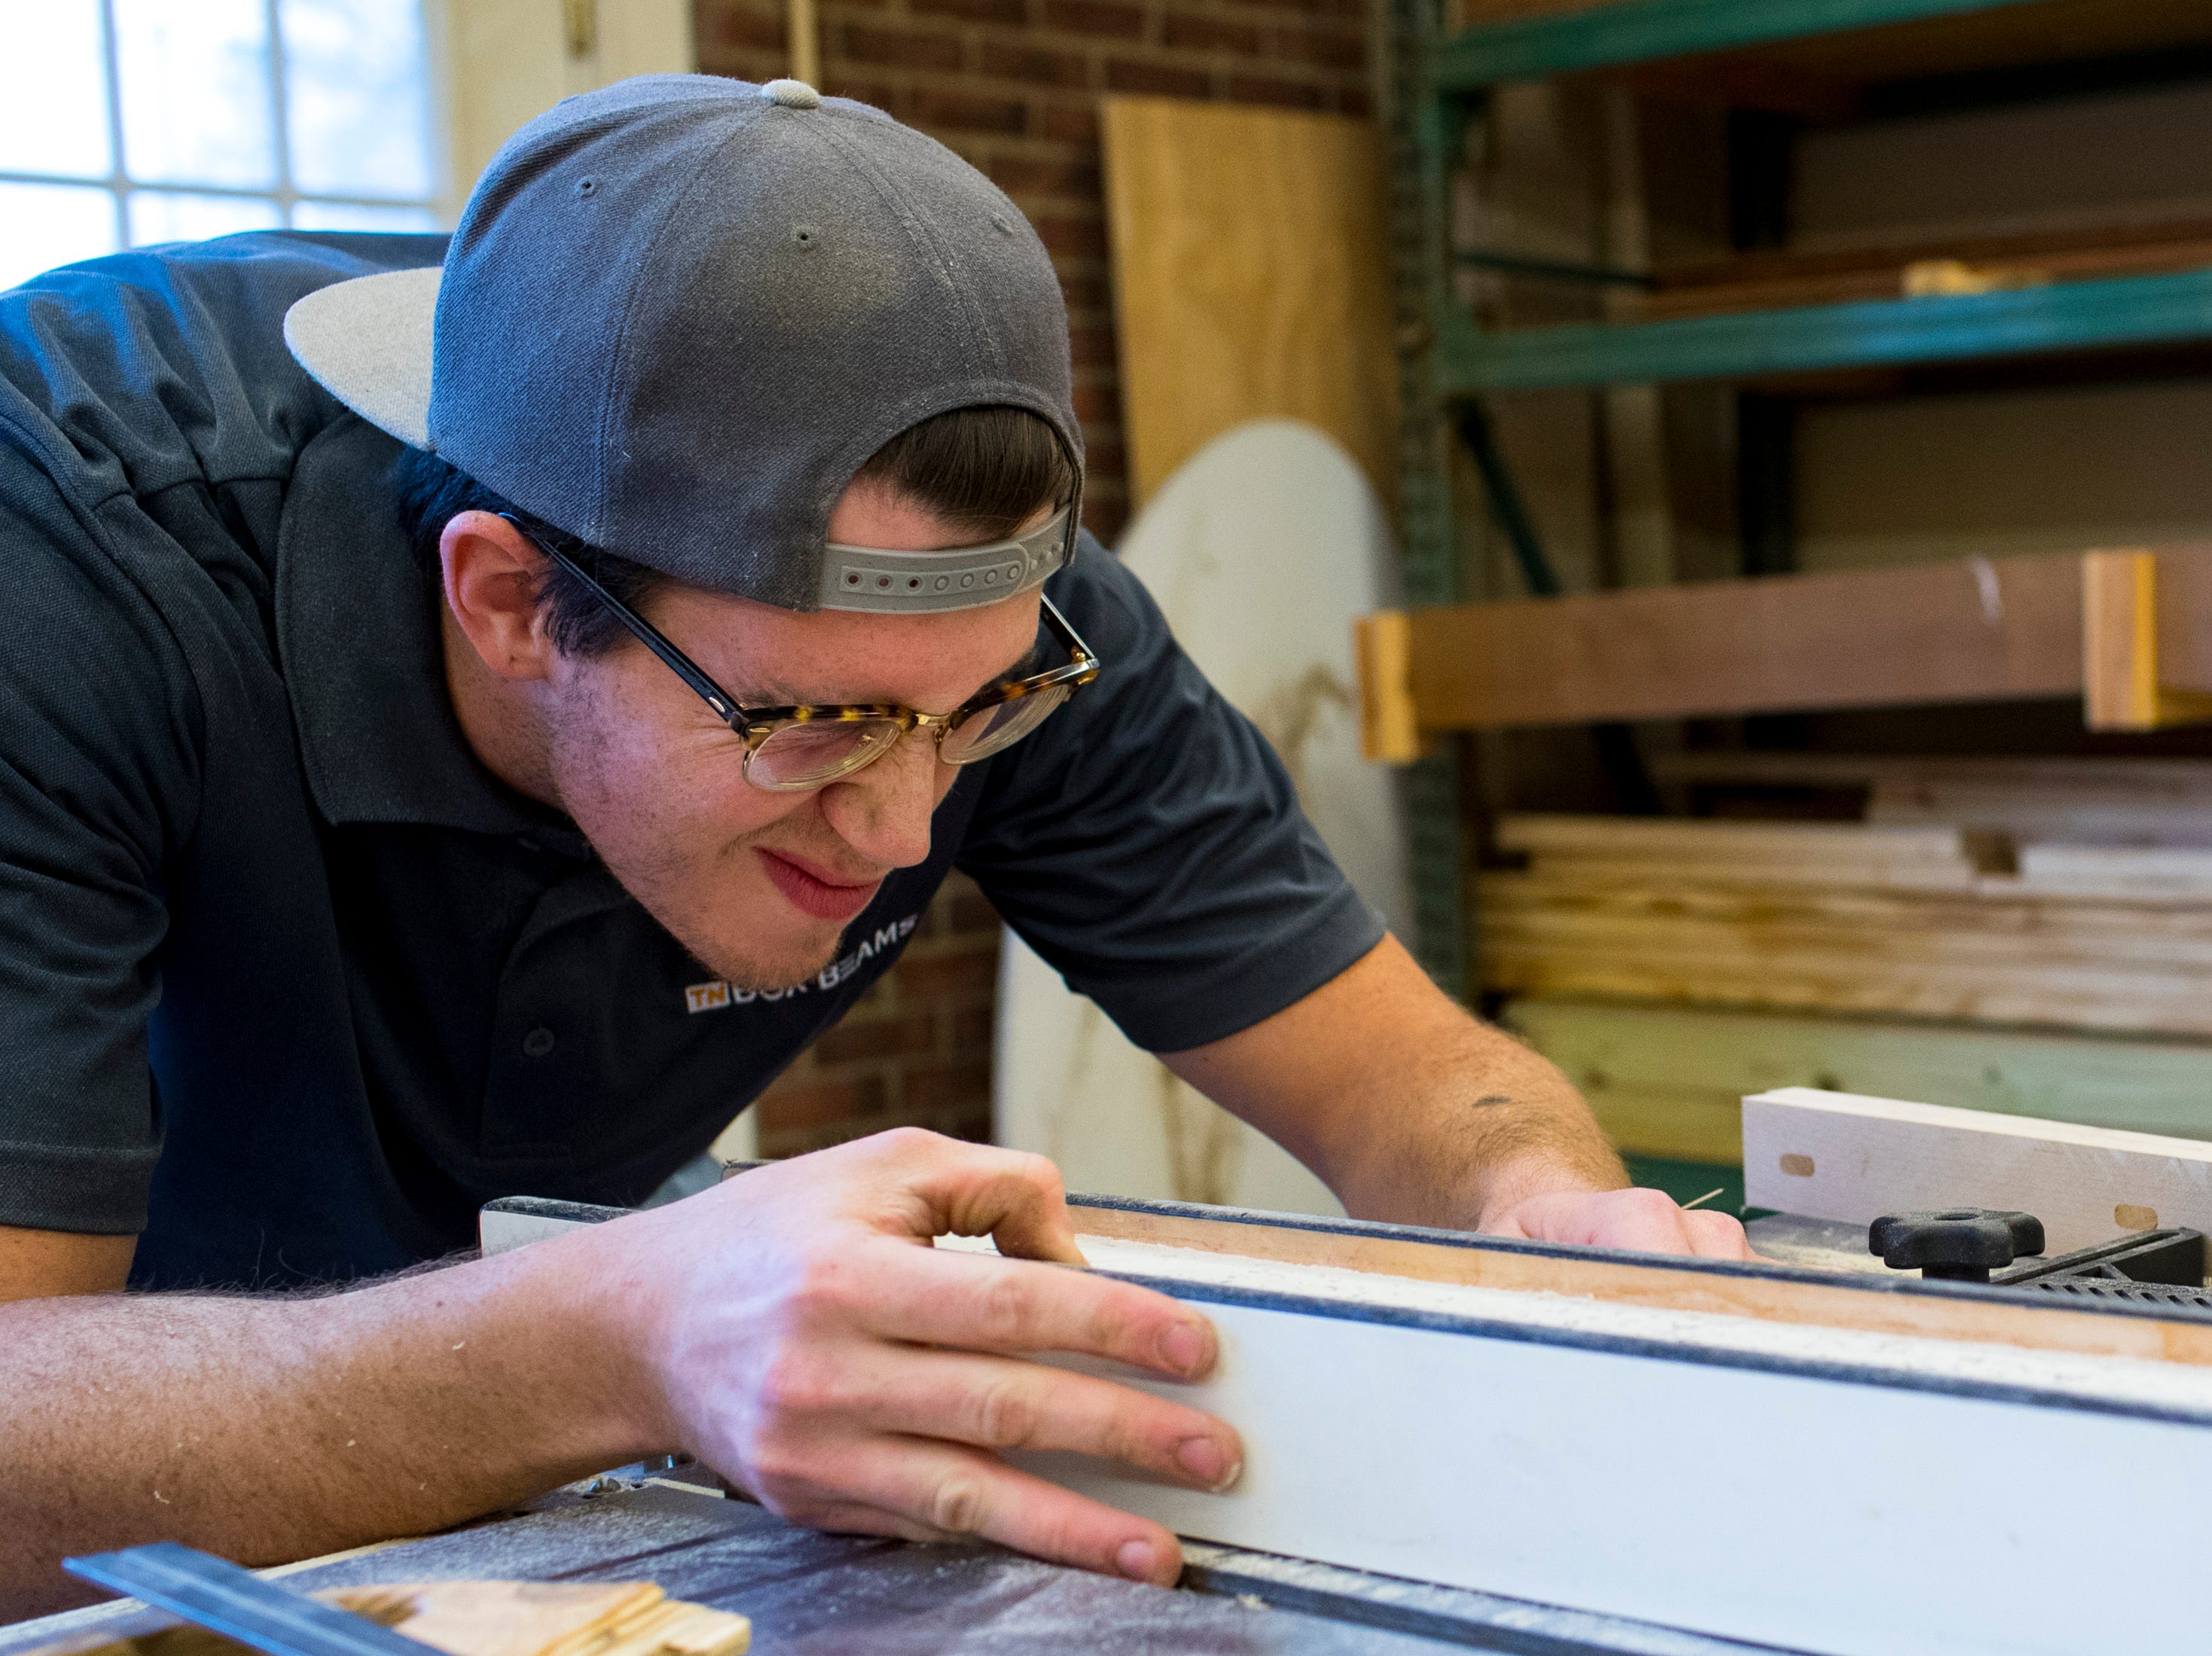 Heath Hill prepares to make a cut on a table saw at TN Box Beams in Franklin on Friday, Nov. 9, 2018. TN Box Beams will be featured on the HGTV show Property Brothers Buying + Selling on Nov. 14.